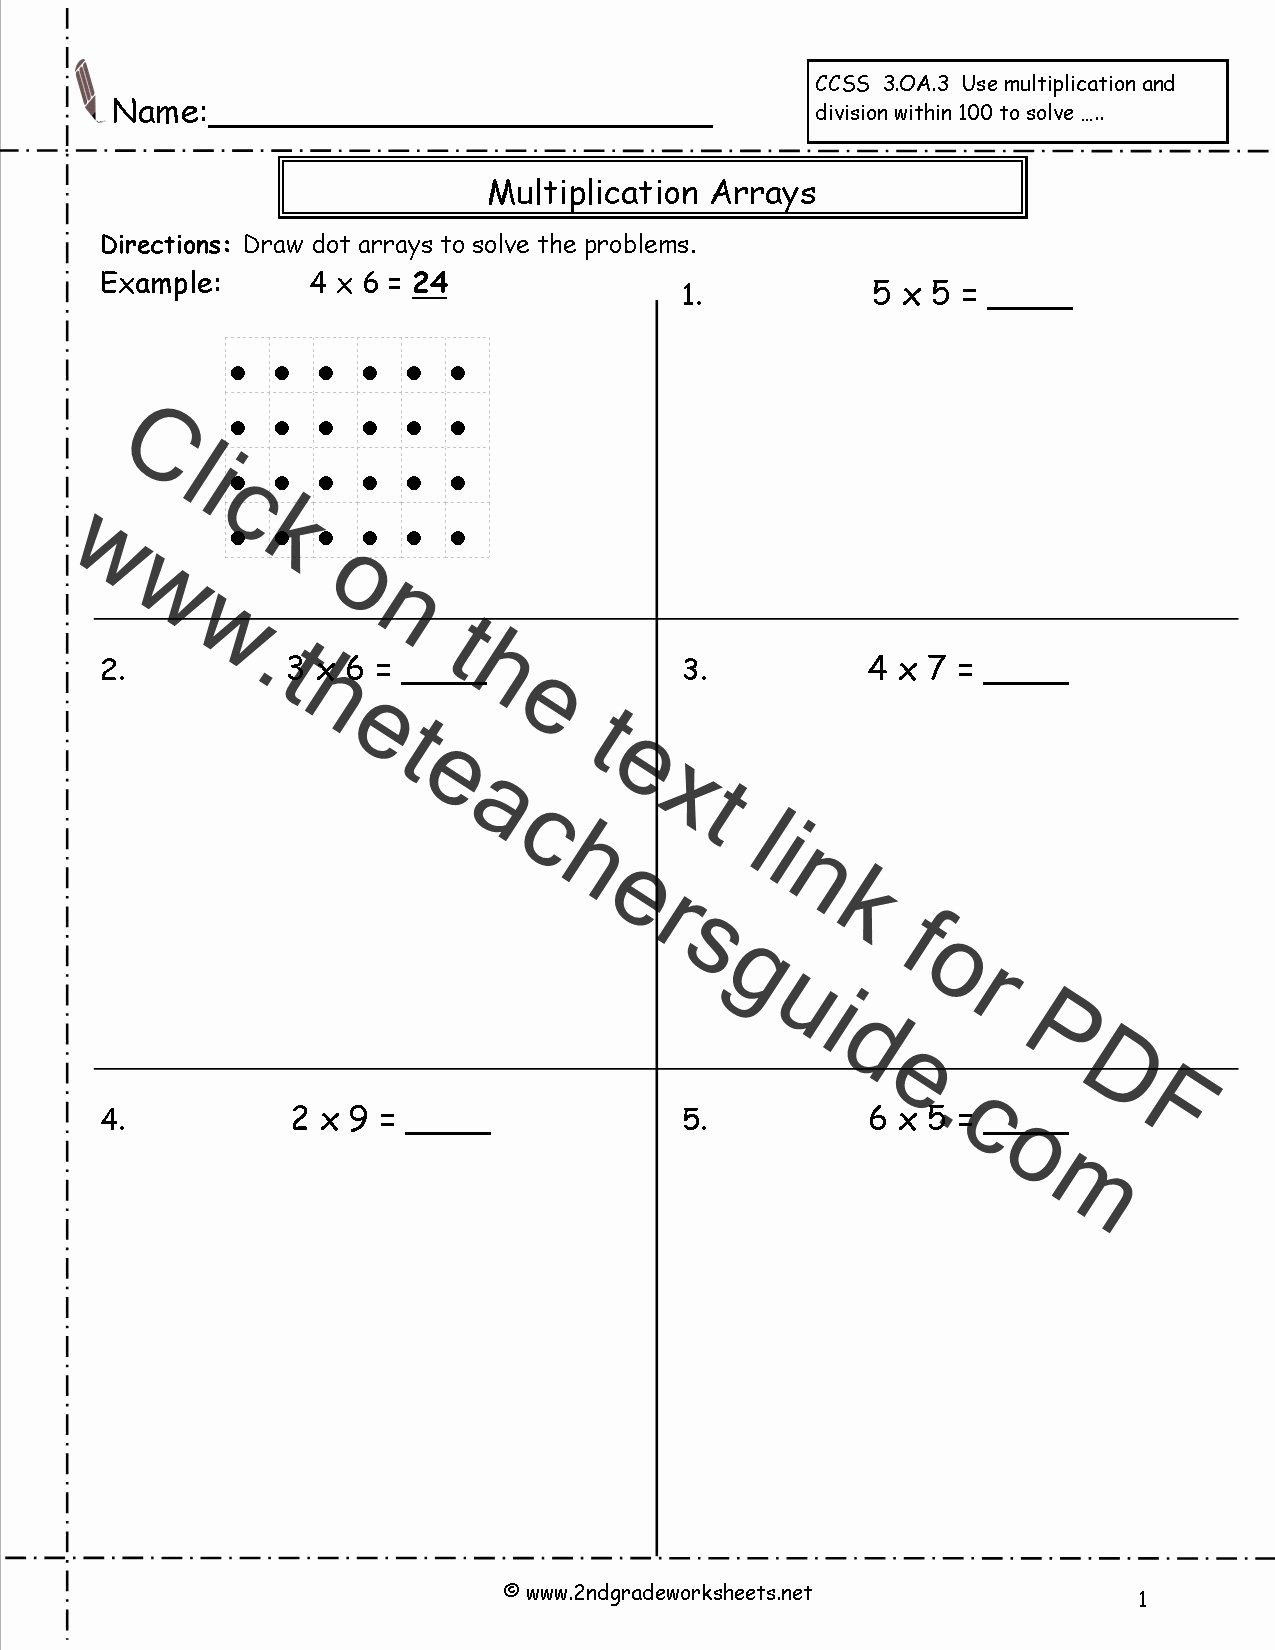 2nd Grade Multiplication Worksheets New Incredible Multiplication Worksheets for Second Grade Math